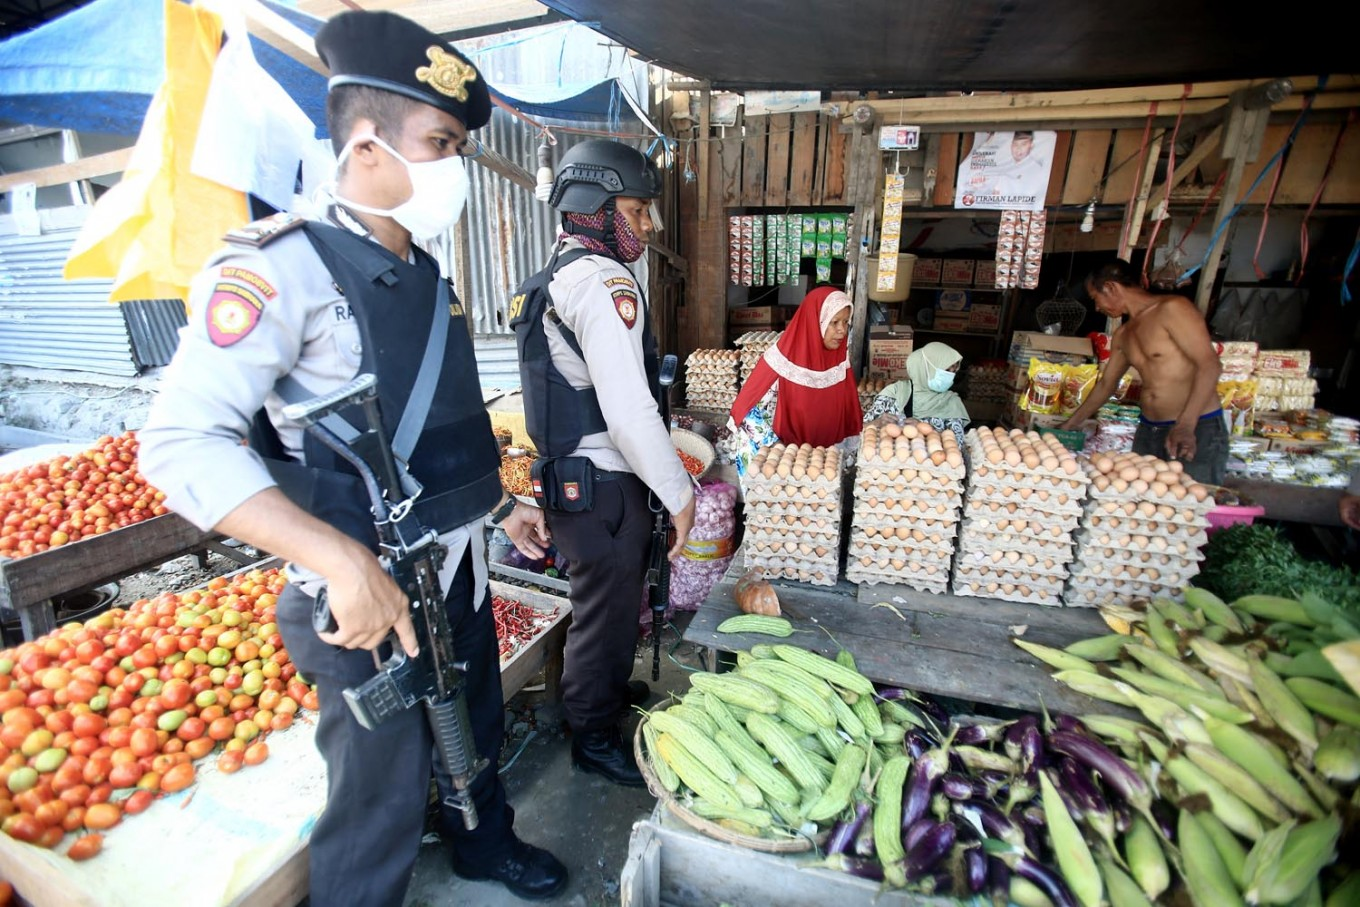 Police officers stand guard at the Masomba traditional market in Lolu subdistrict, South Palu, on Thursday, October 4, 2018. . Slowly, local economic activity has resumed in the city. JP/Dhoni Setiawan